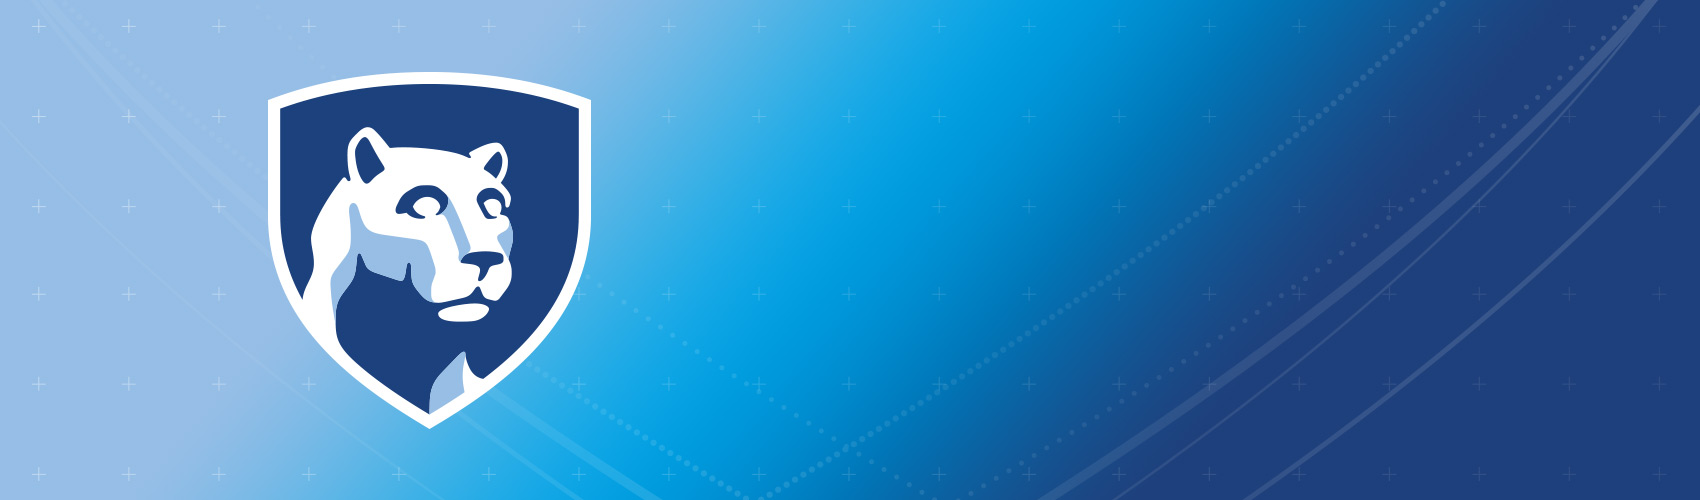 blue gradient with shield